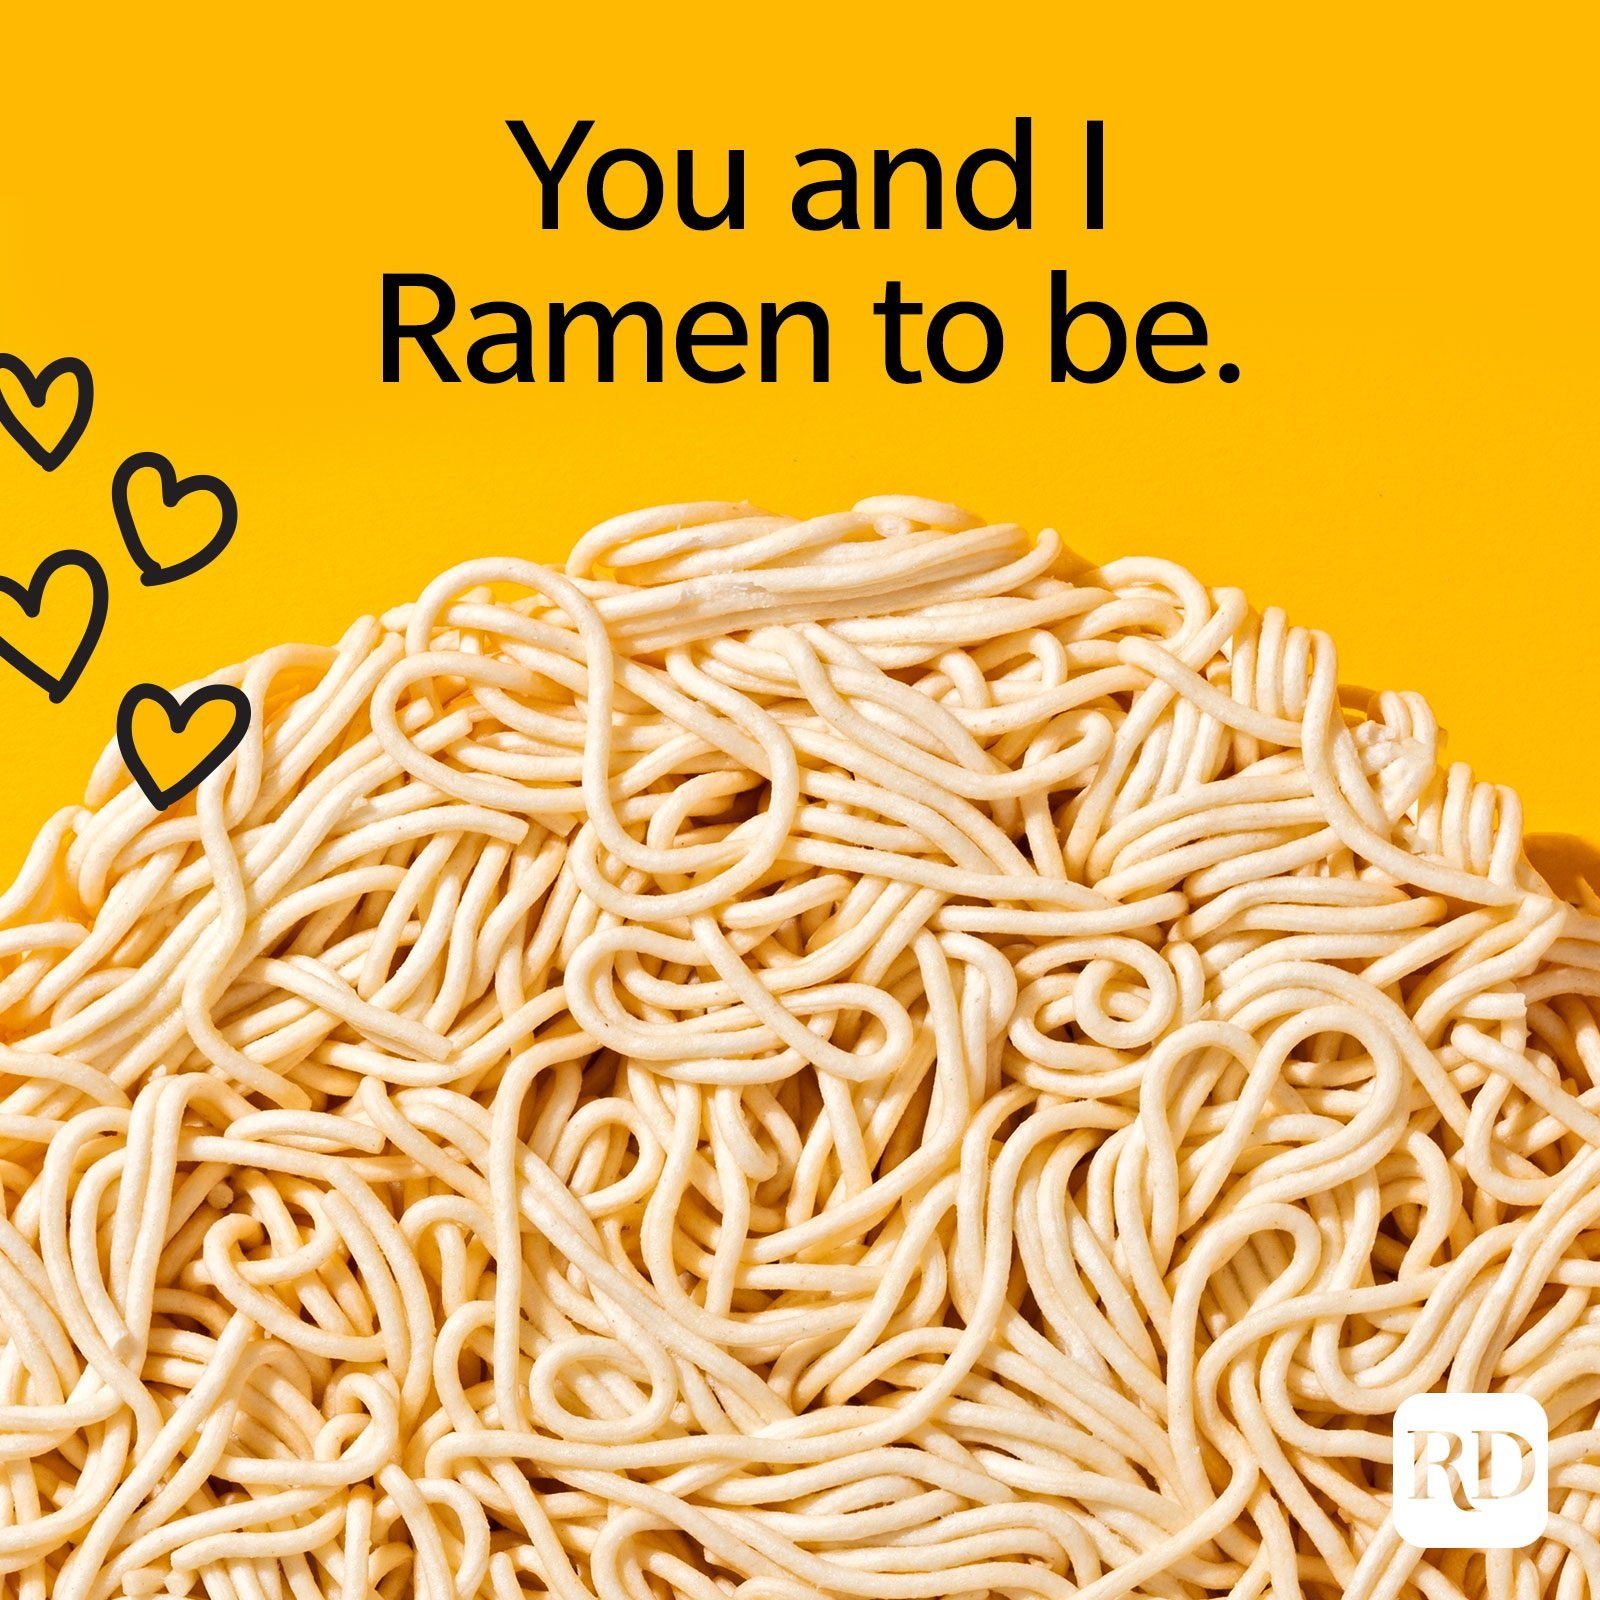 You and I are Ramen to be.